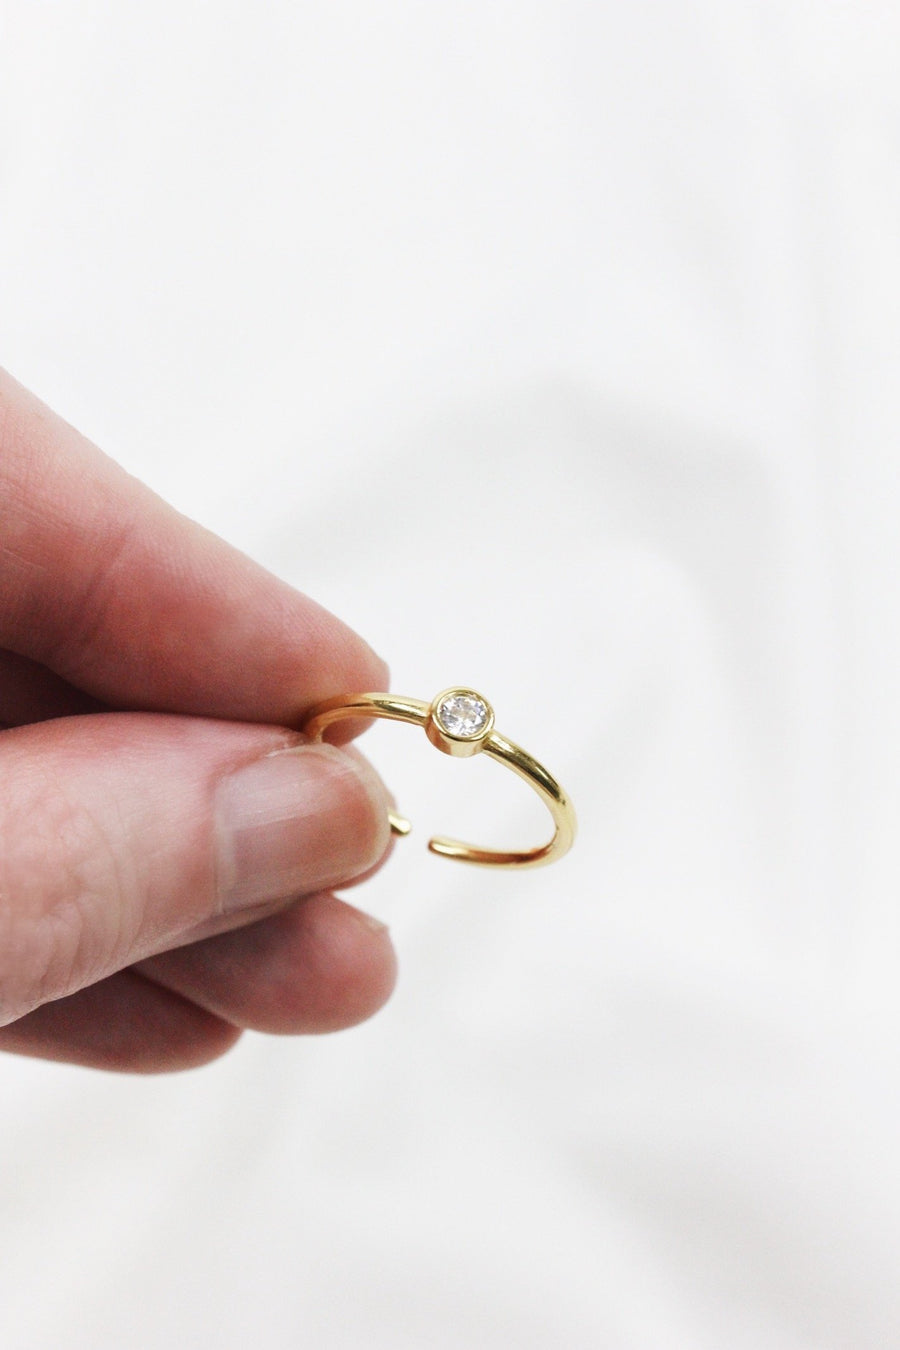 CRYSTAL DREAM GOLD RING - Halite Clothing